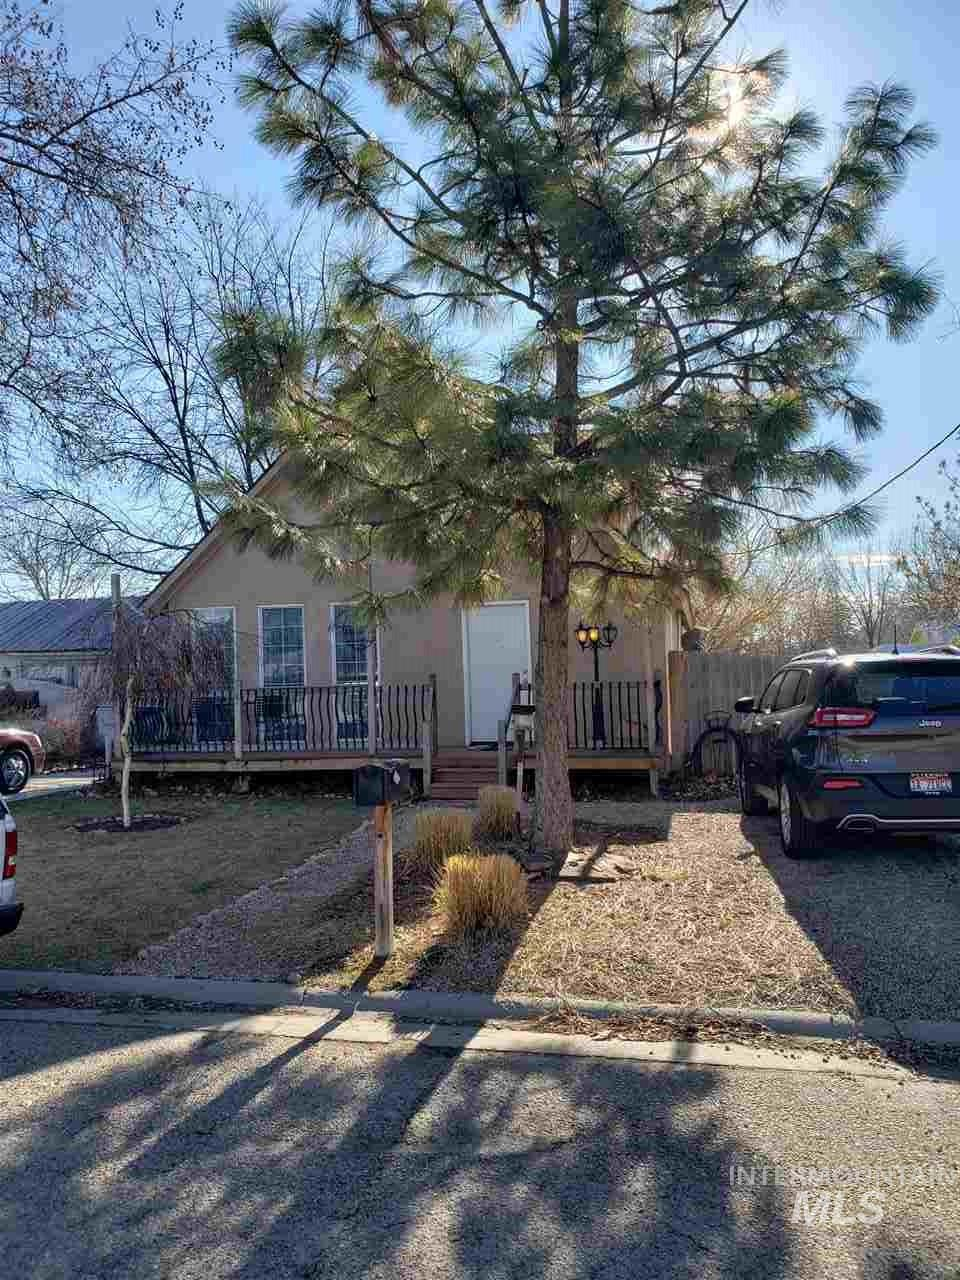 Do not miss out on this one!!  This will sell fast! Possibility to leave most furniture with this house including washer and dryer. Could be a rental or first home. This home is well taken care of move in ready!!!